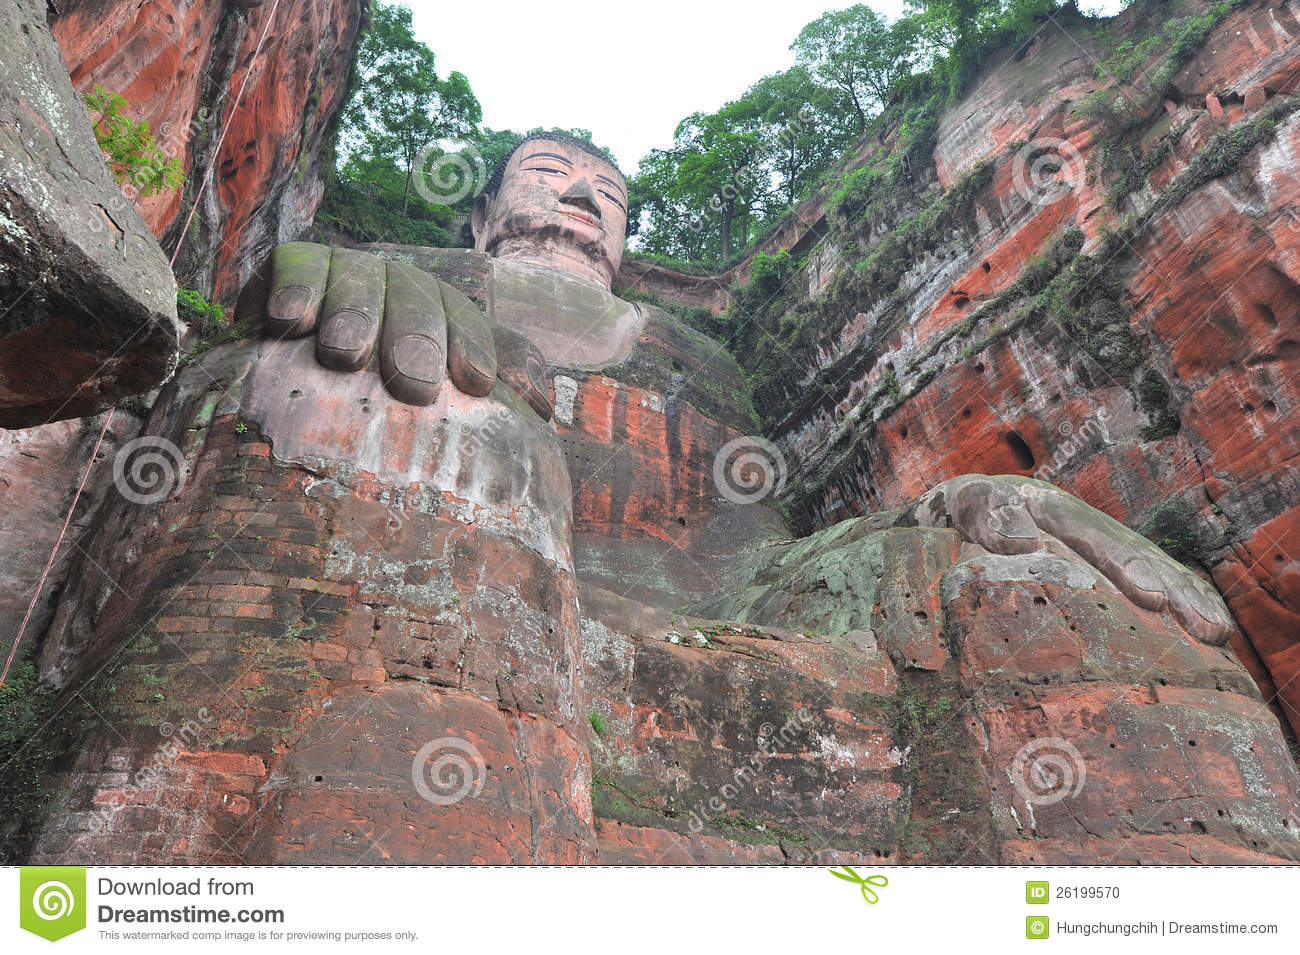 gr te buddha statue in der welt in leshan stockfoto bild 26199570. Black Bedroom Furniture Sets. Home Design Ideas